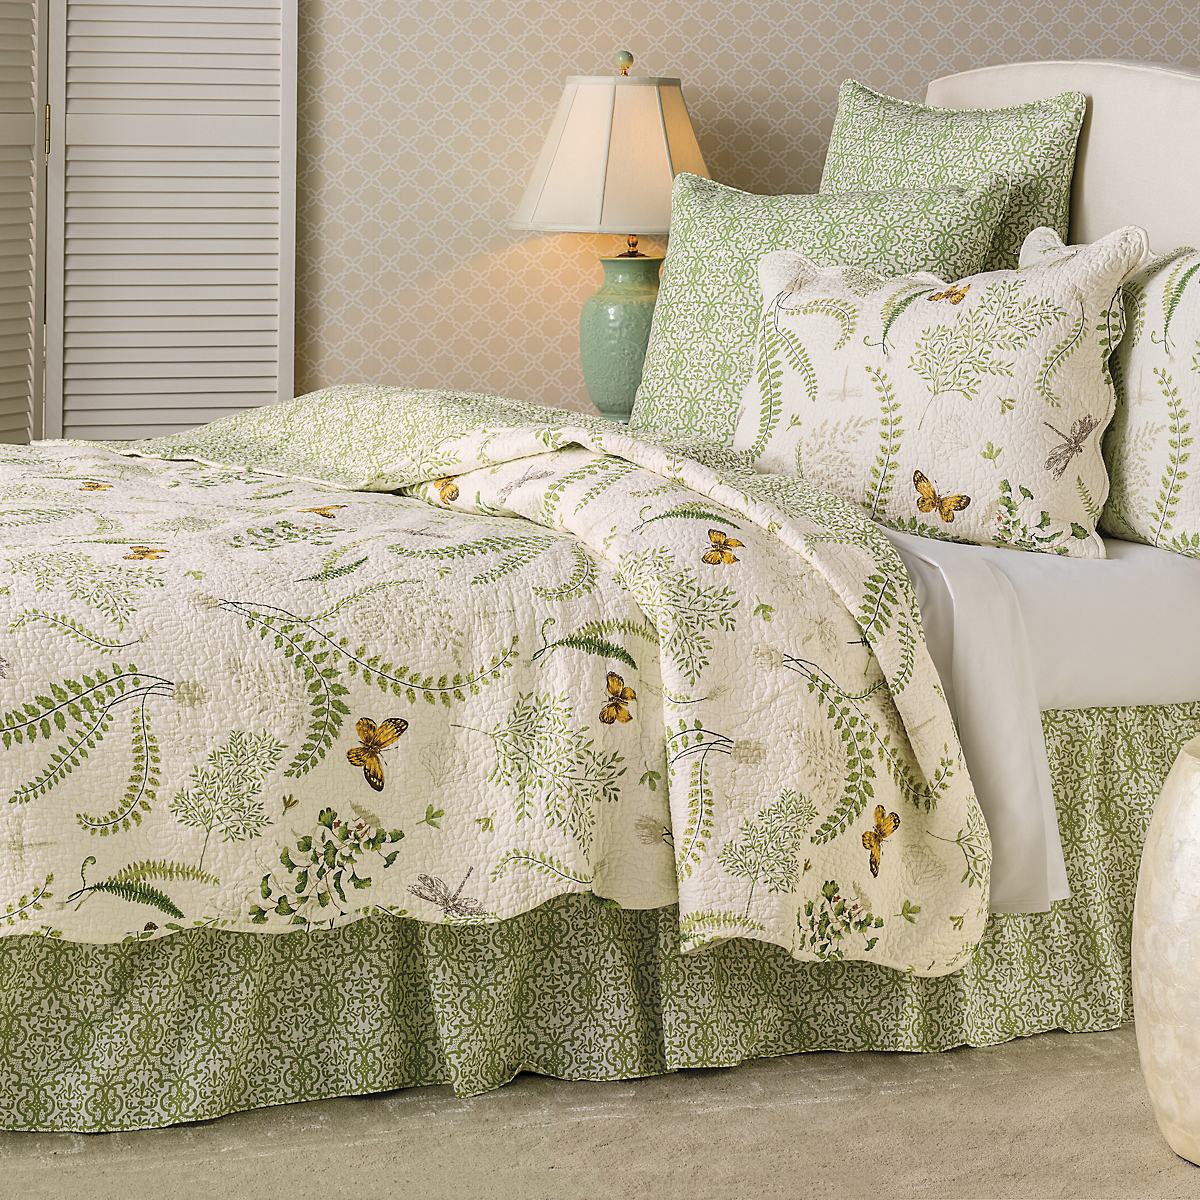 Fern Bedding Gump S